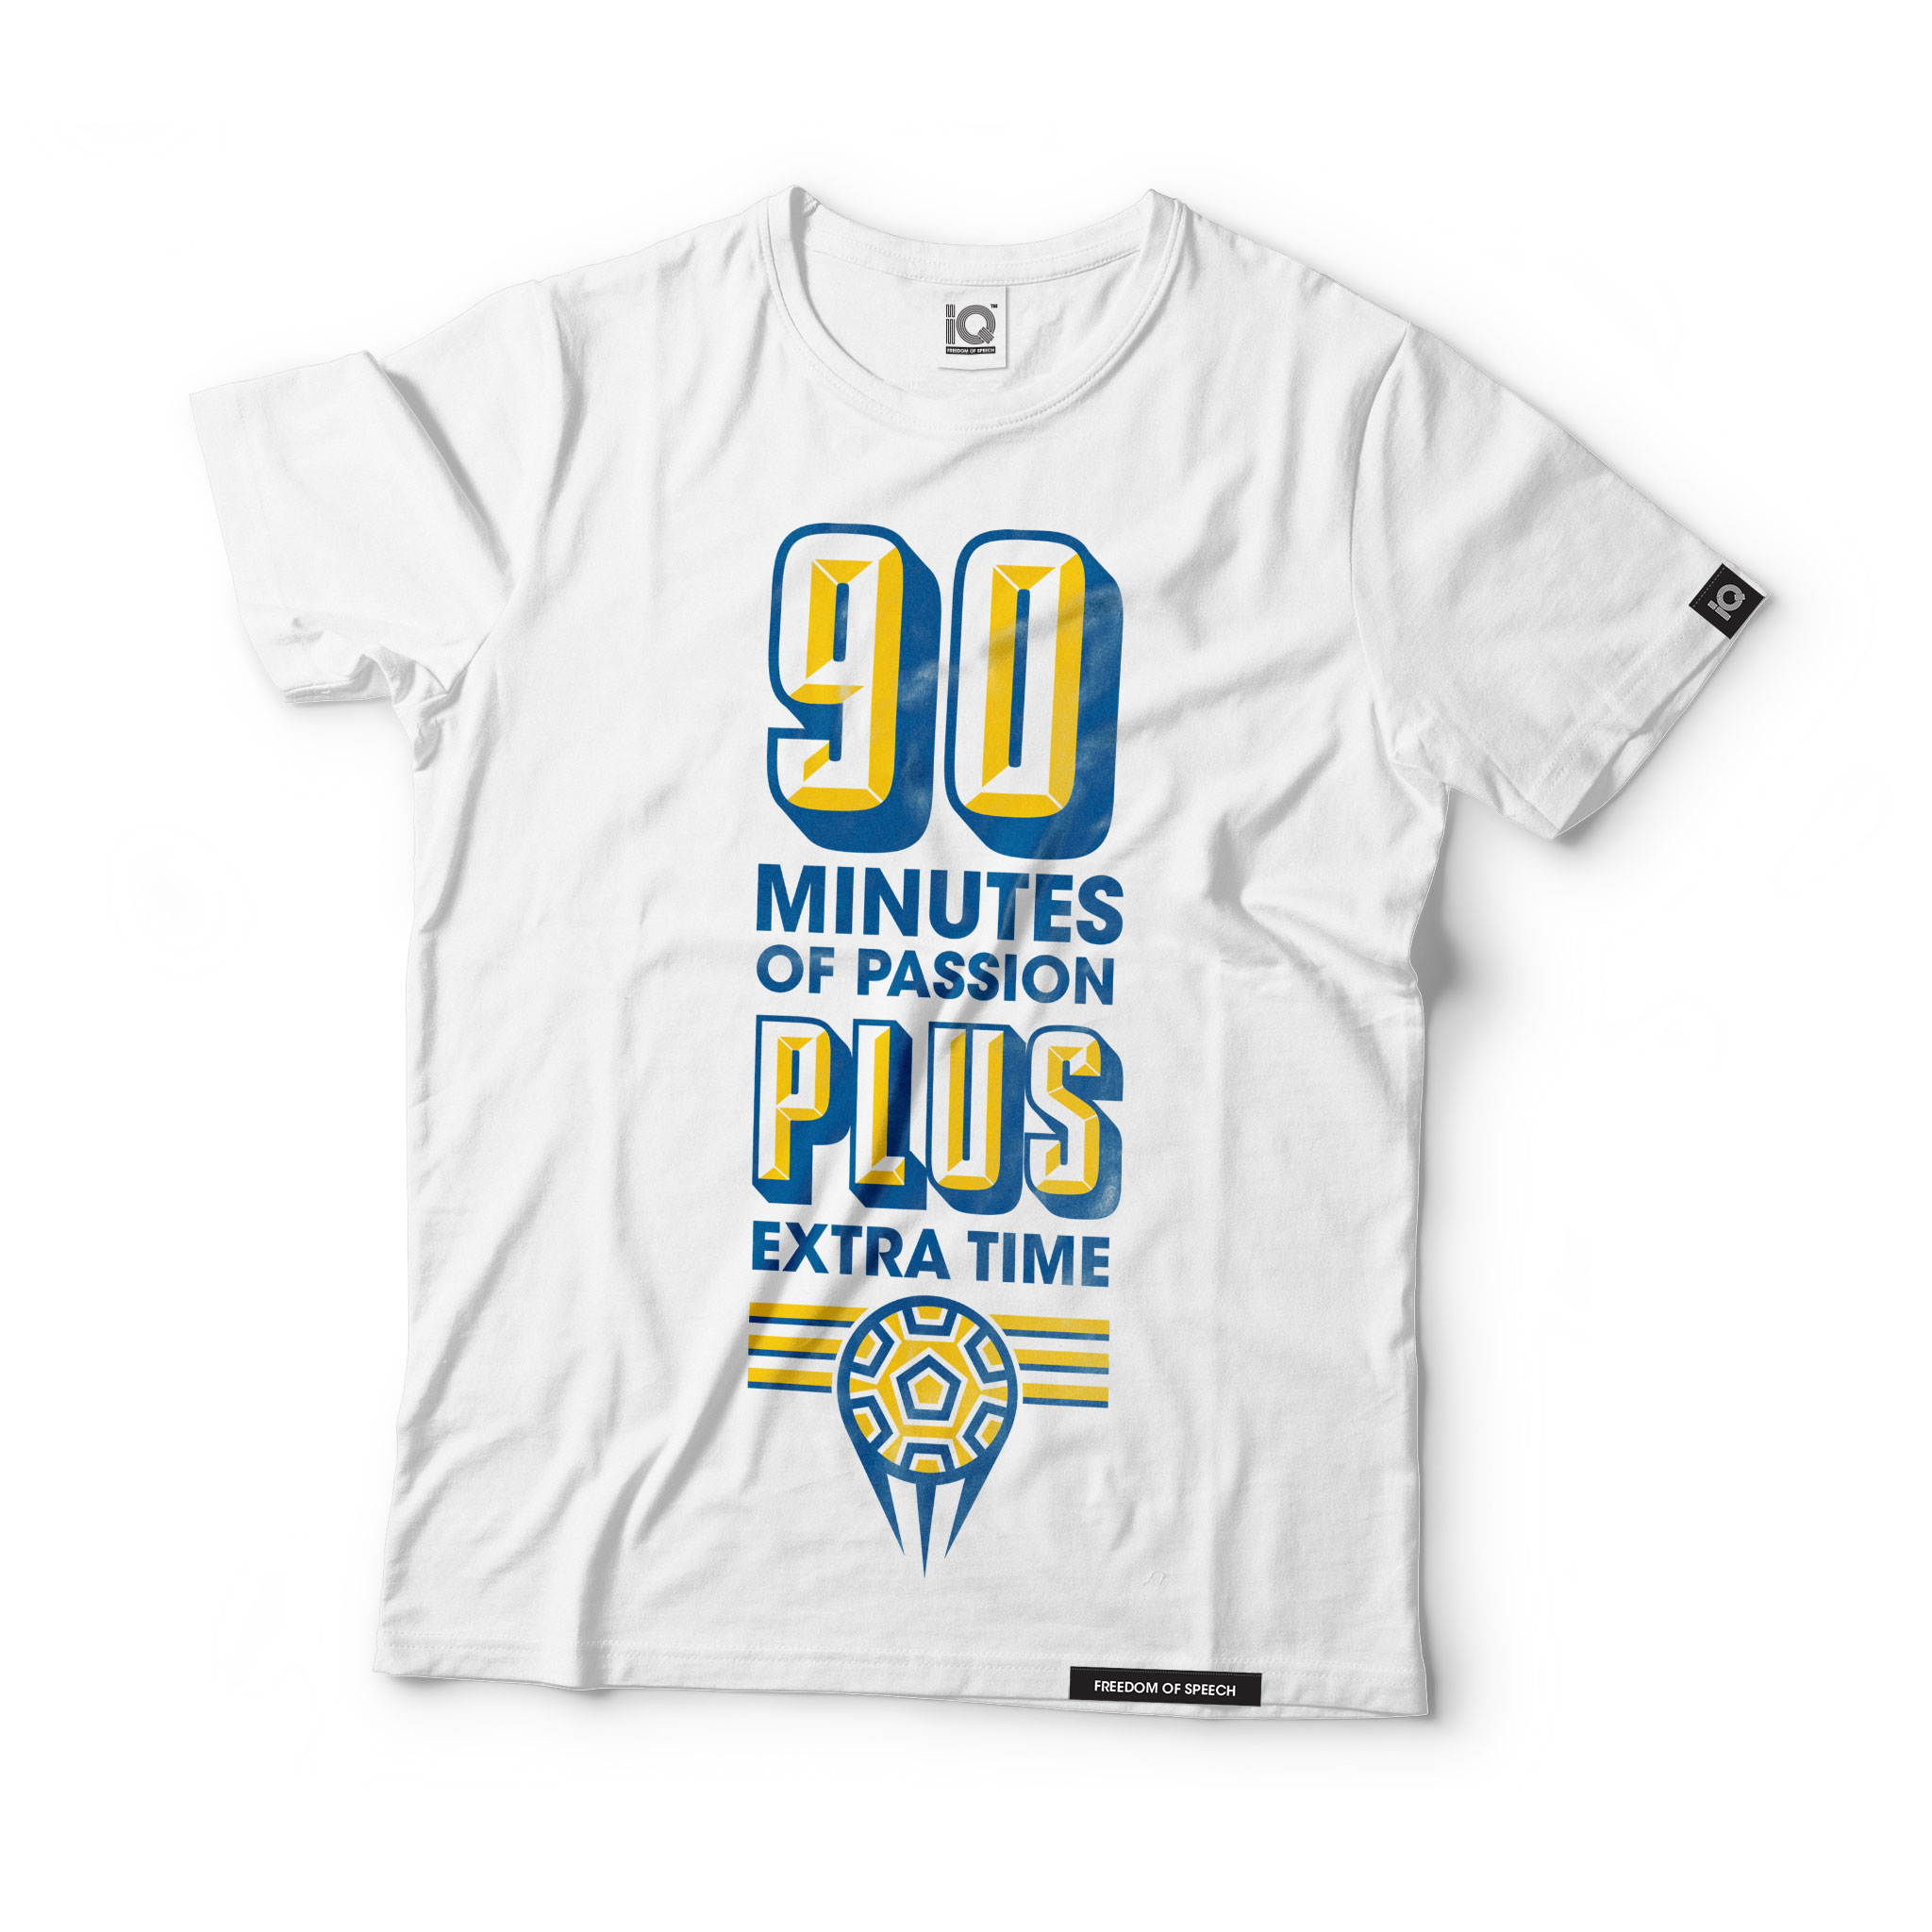 90-minutes-of-passion-plus-extra-time-white-tshirt